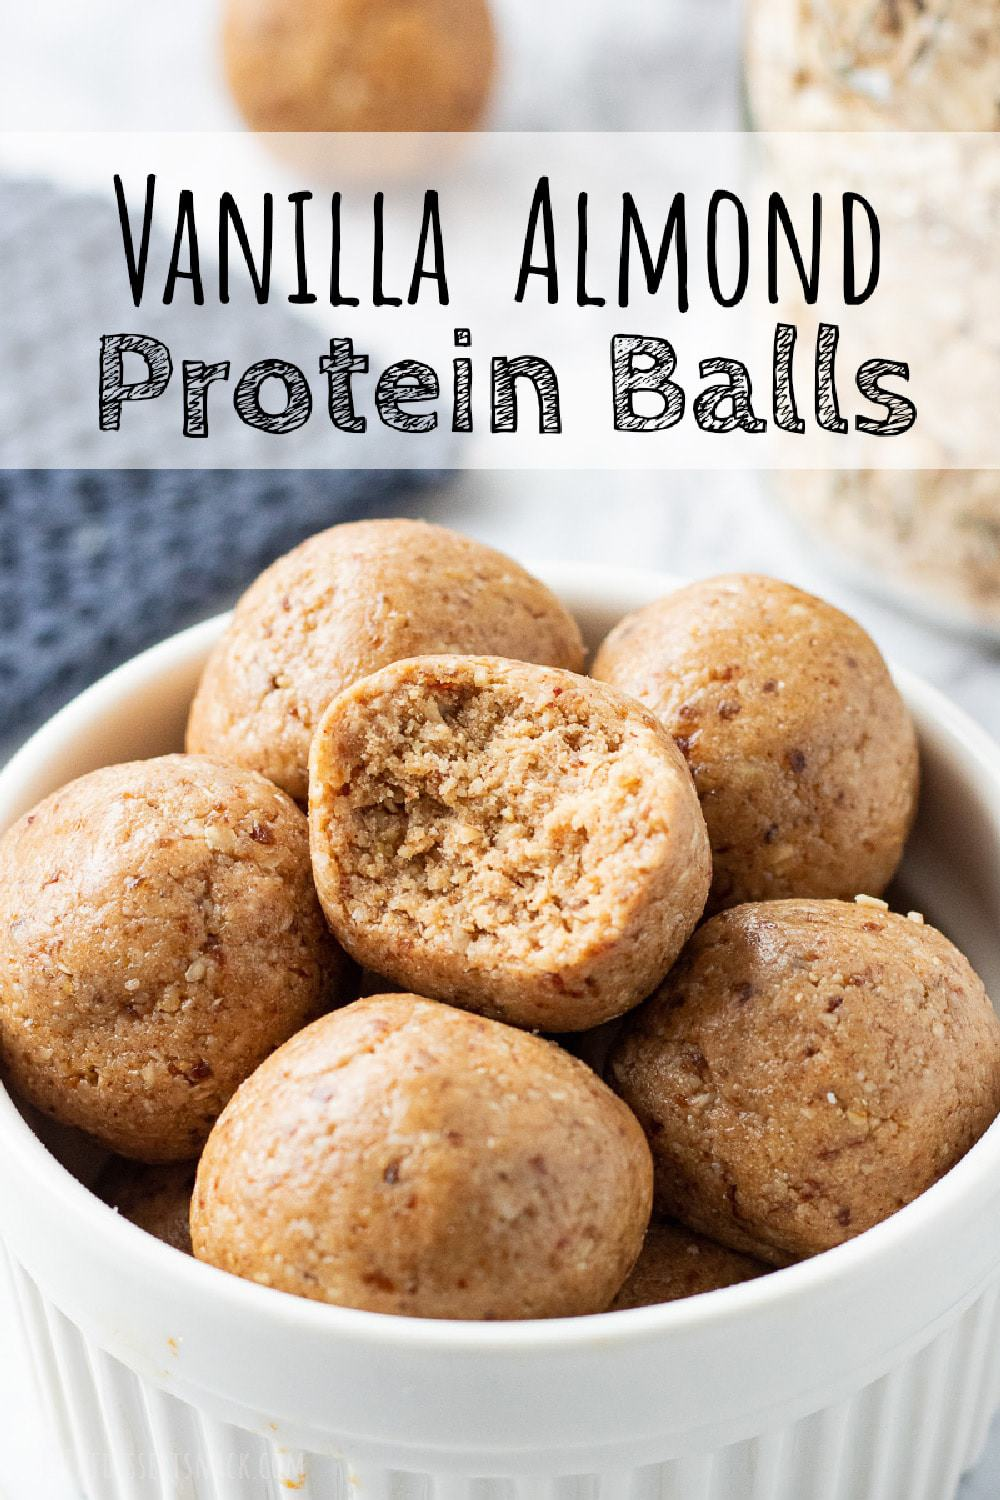 Almond Butter Protein Ball with bite mark in white bowl.